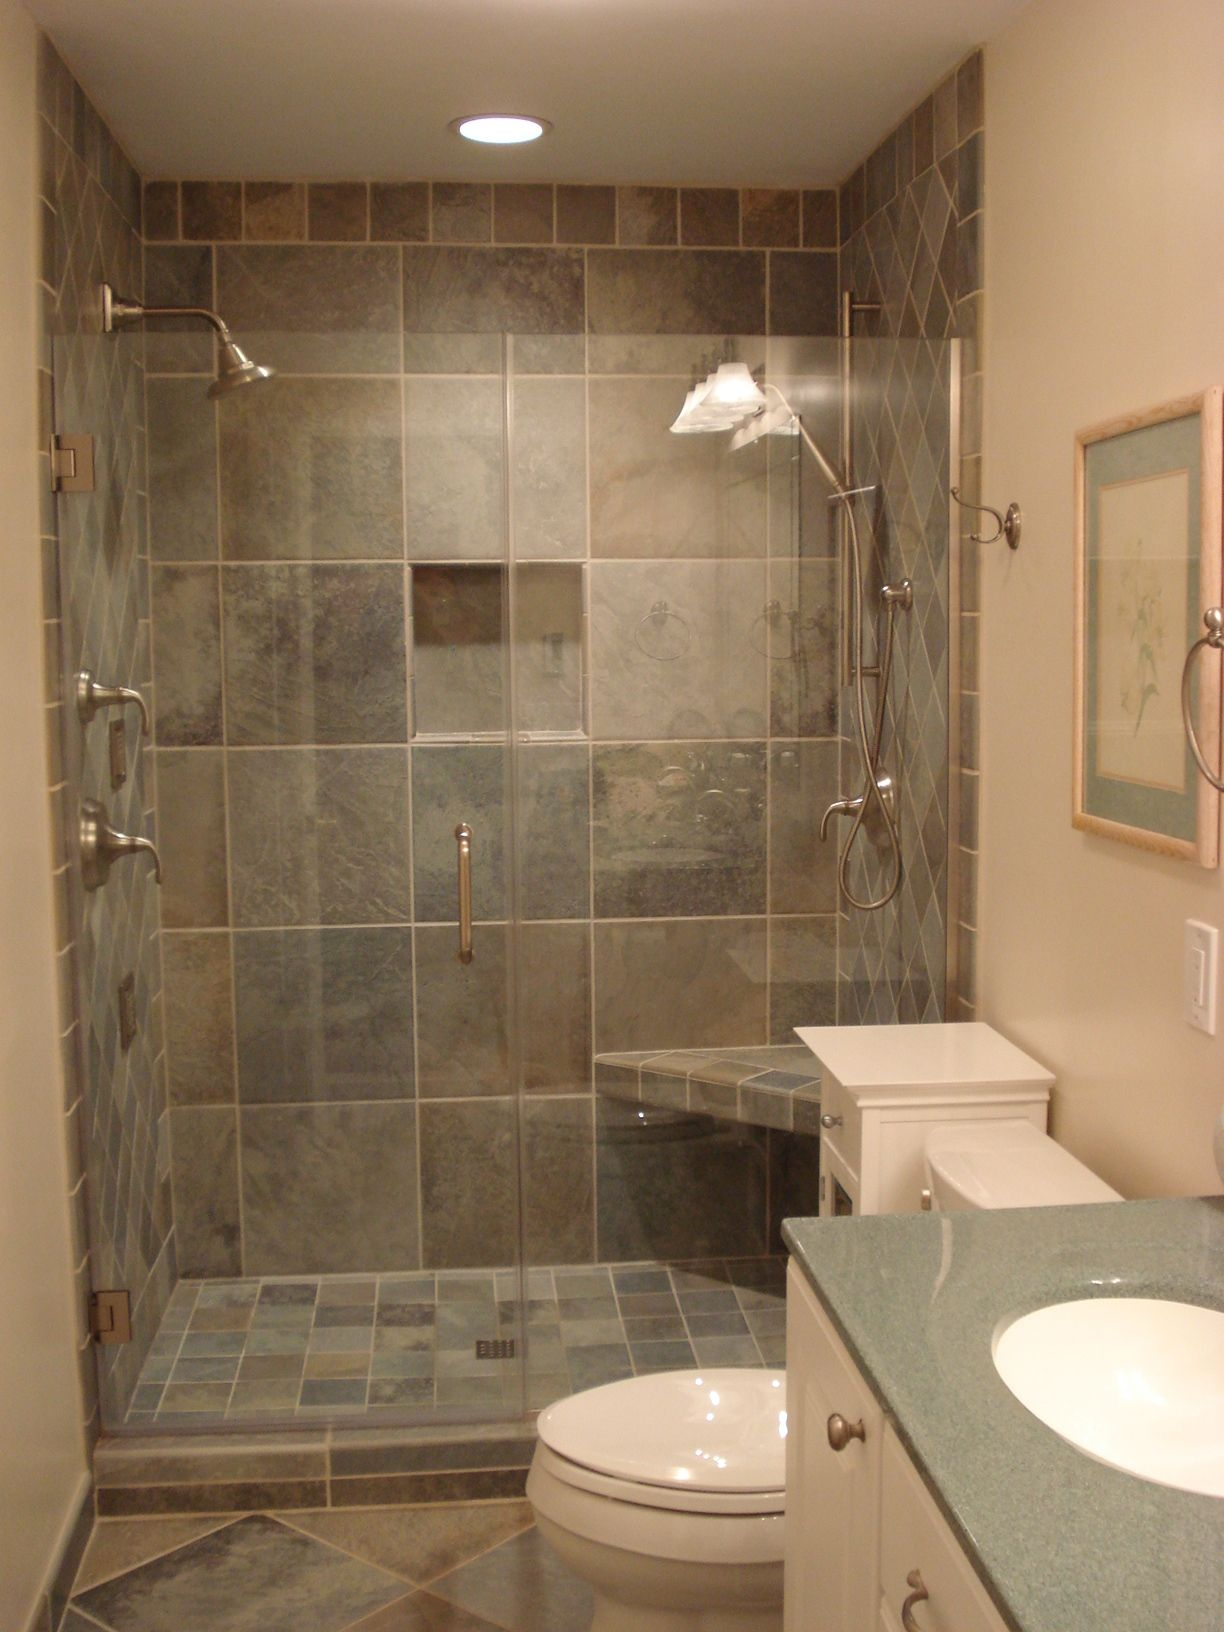 besf of ideas remodel bathroom tub and how to remodel my bathroom sydney bathroom renovations small bathroom remodel on a budget remodel a small bathroom - Small Bathroom Design Ideas On A Budget